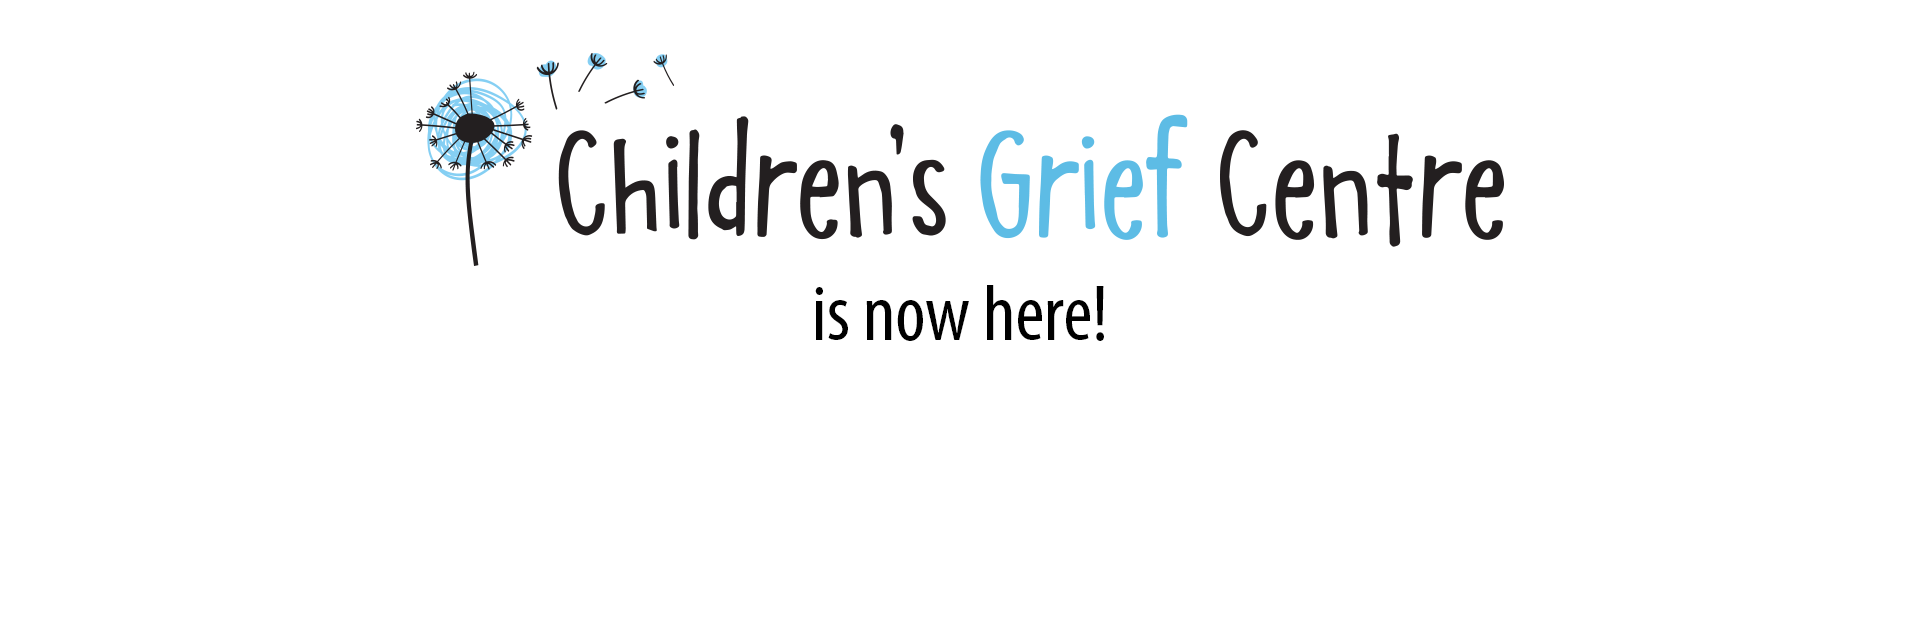 Children's Grief Centre